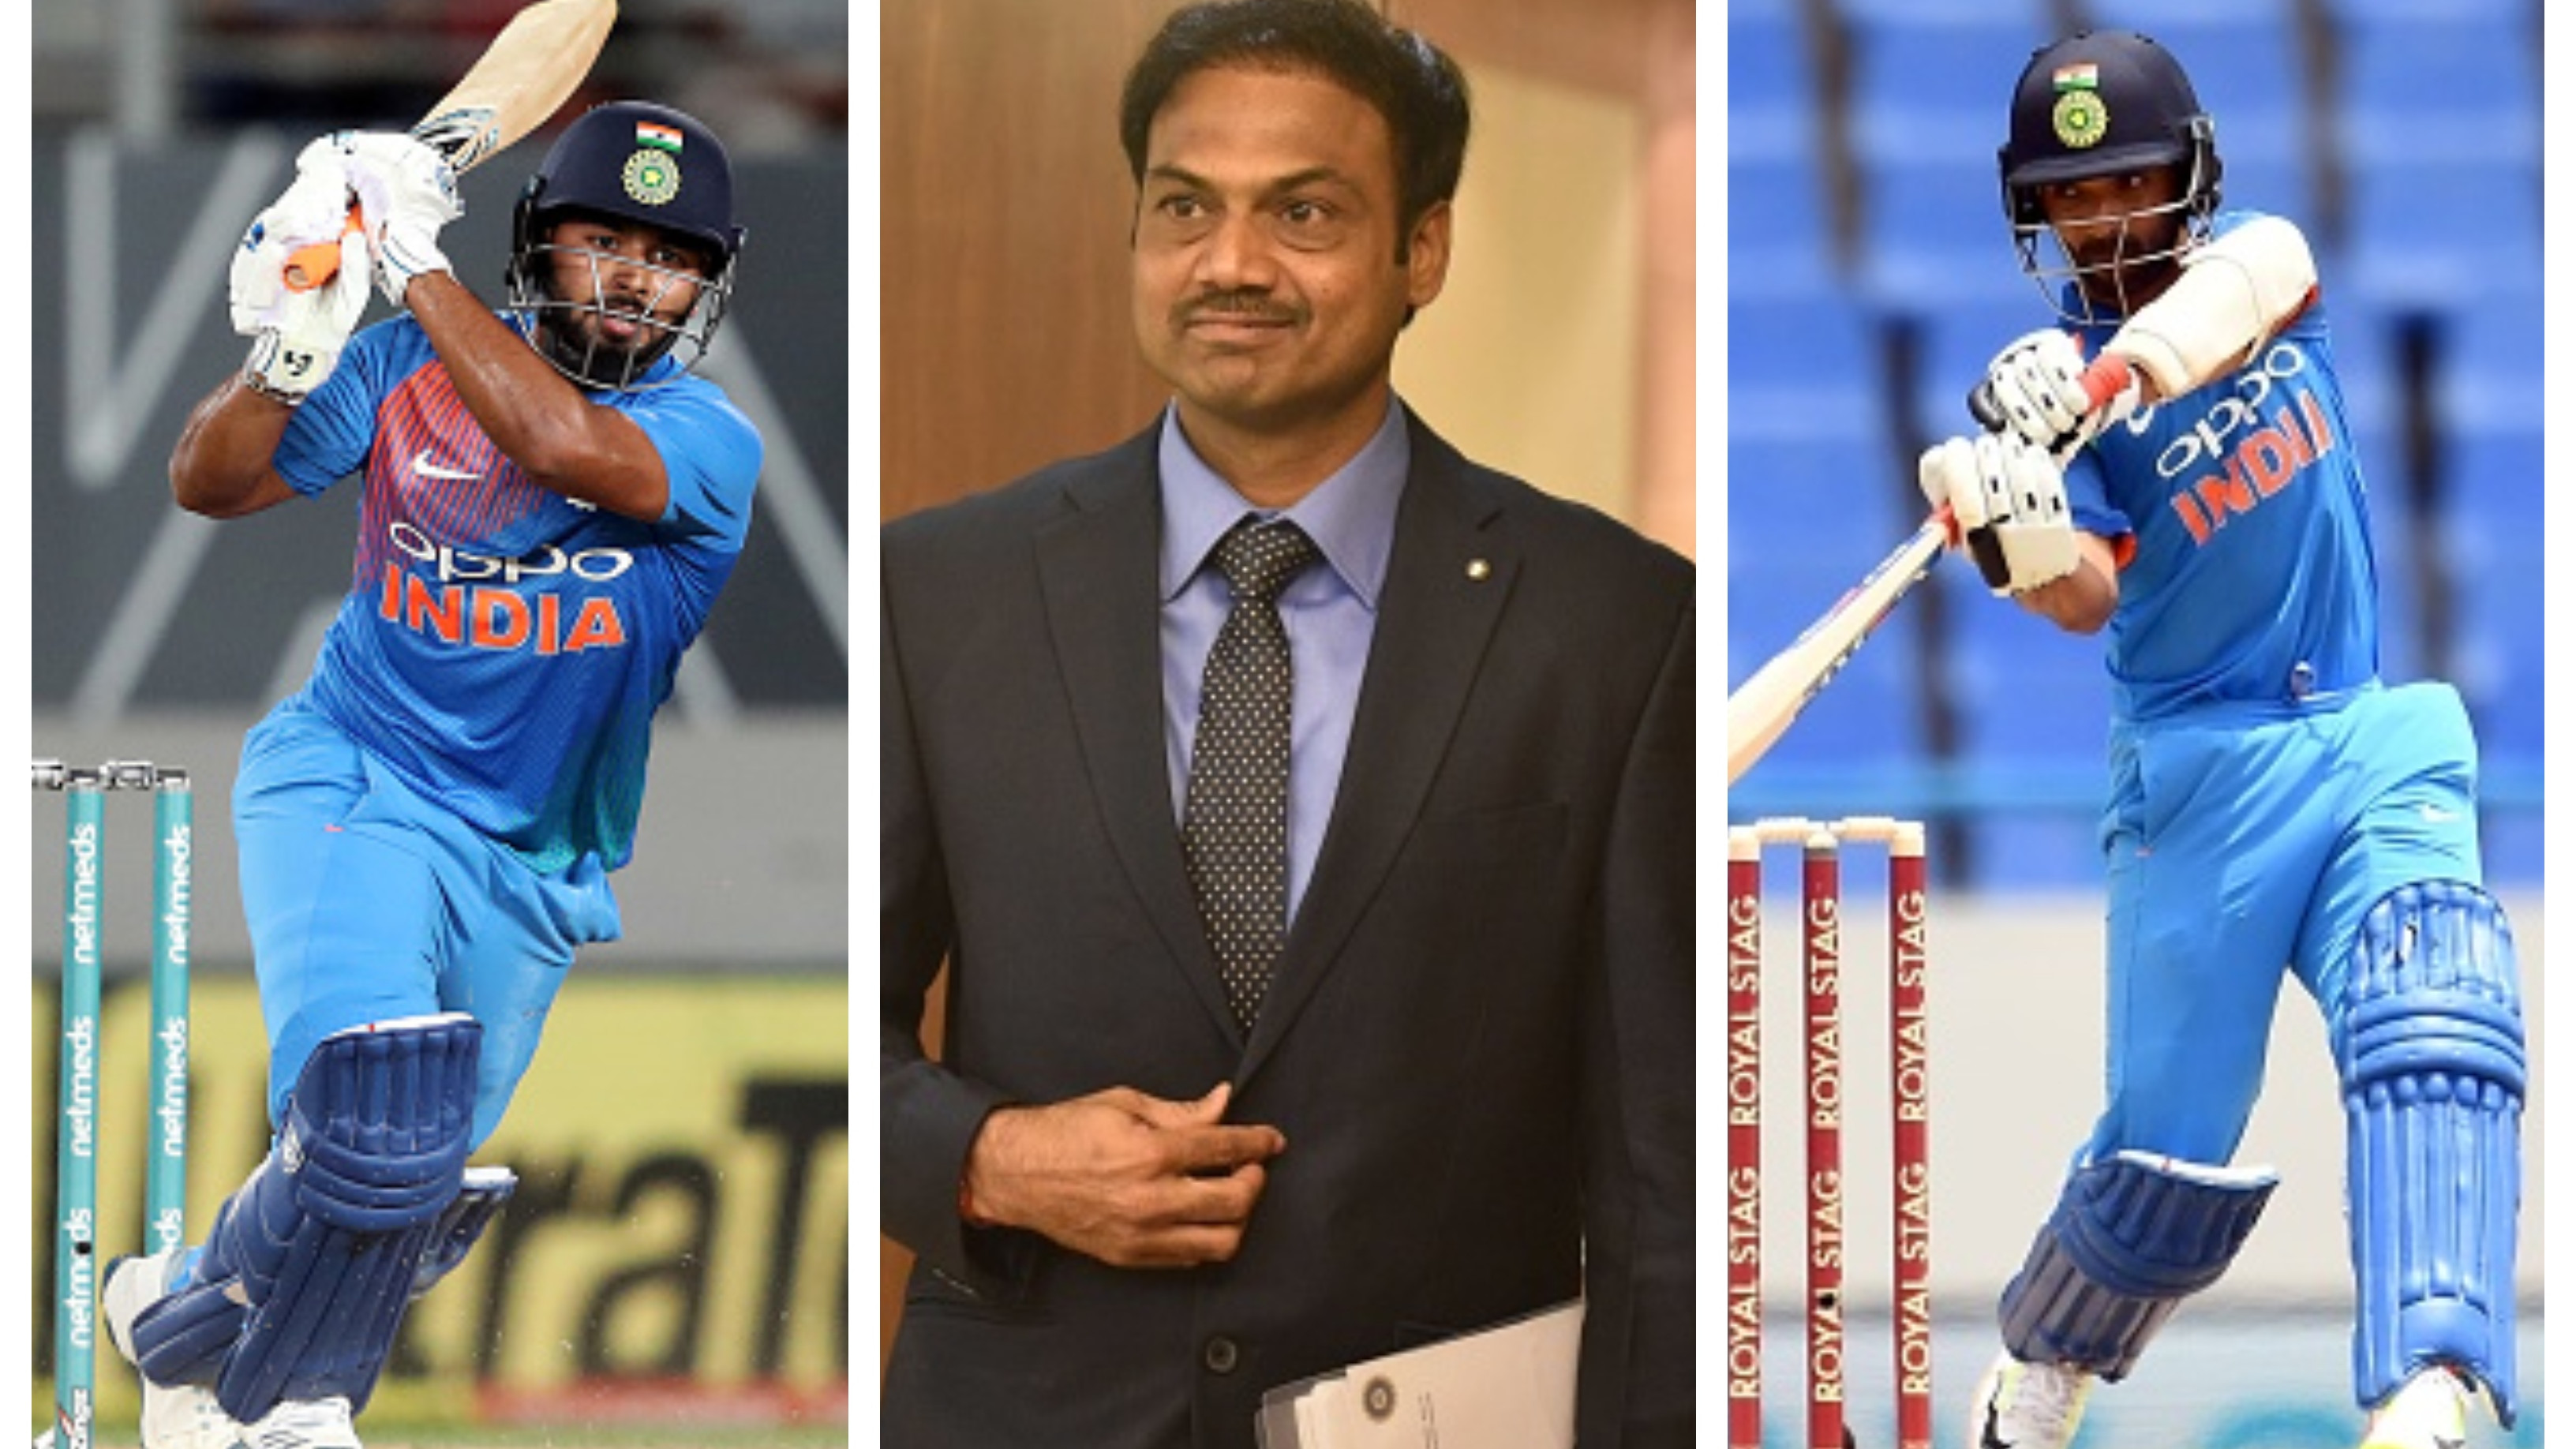 Rishabh Pant and Ajinkya Rahane are part of India's World Cup plans, confirms chief selector MSK Prasad